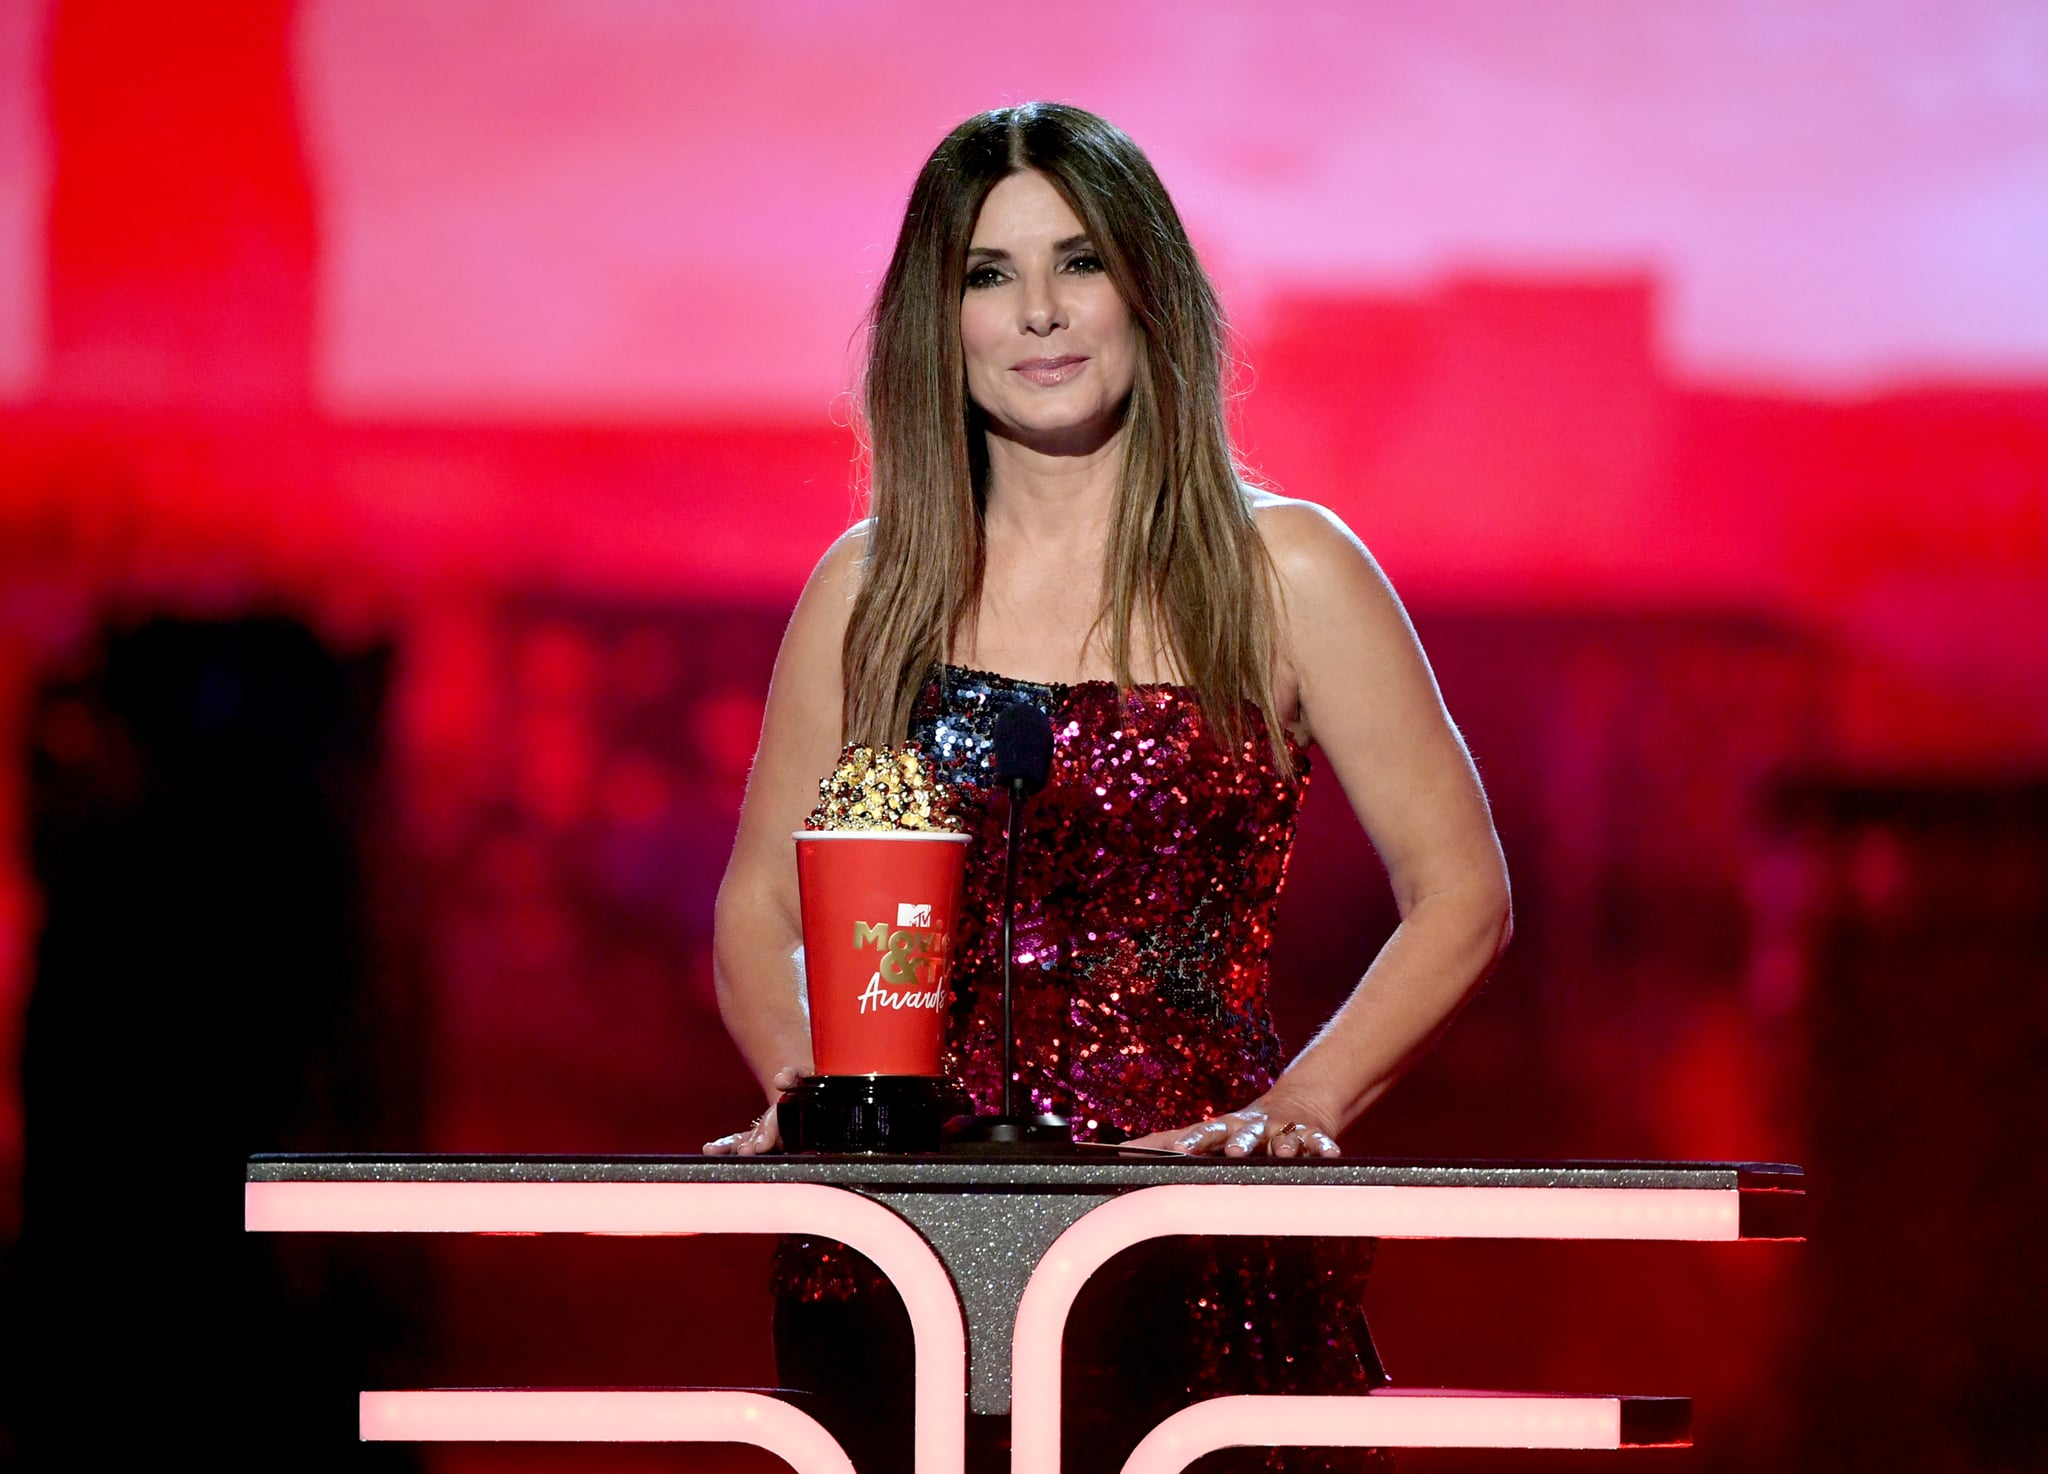 SANTA MONICA, CALIFORNIA - JUNE 15: Sandra Bullock accepts the Most Frightened Performance award for 'Bird Box' onstage during the 2019 MTV Movie and TV Awards at Barker Hangar on June 15, 2019 in Santa Monica, California. (Photo by Kevin Winter/Getty Images for MTV)